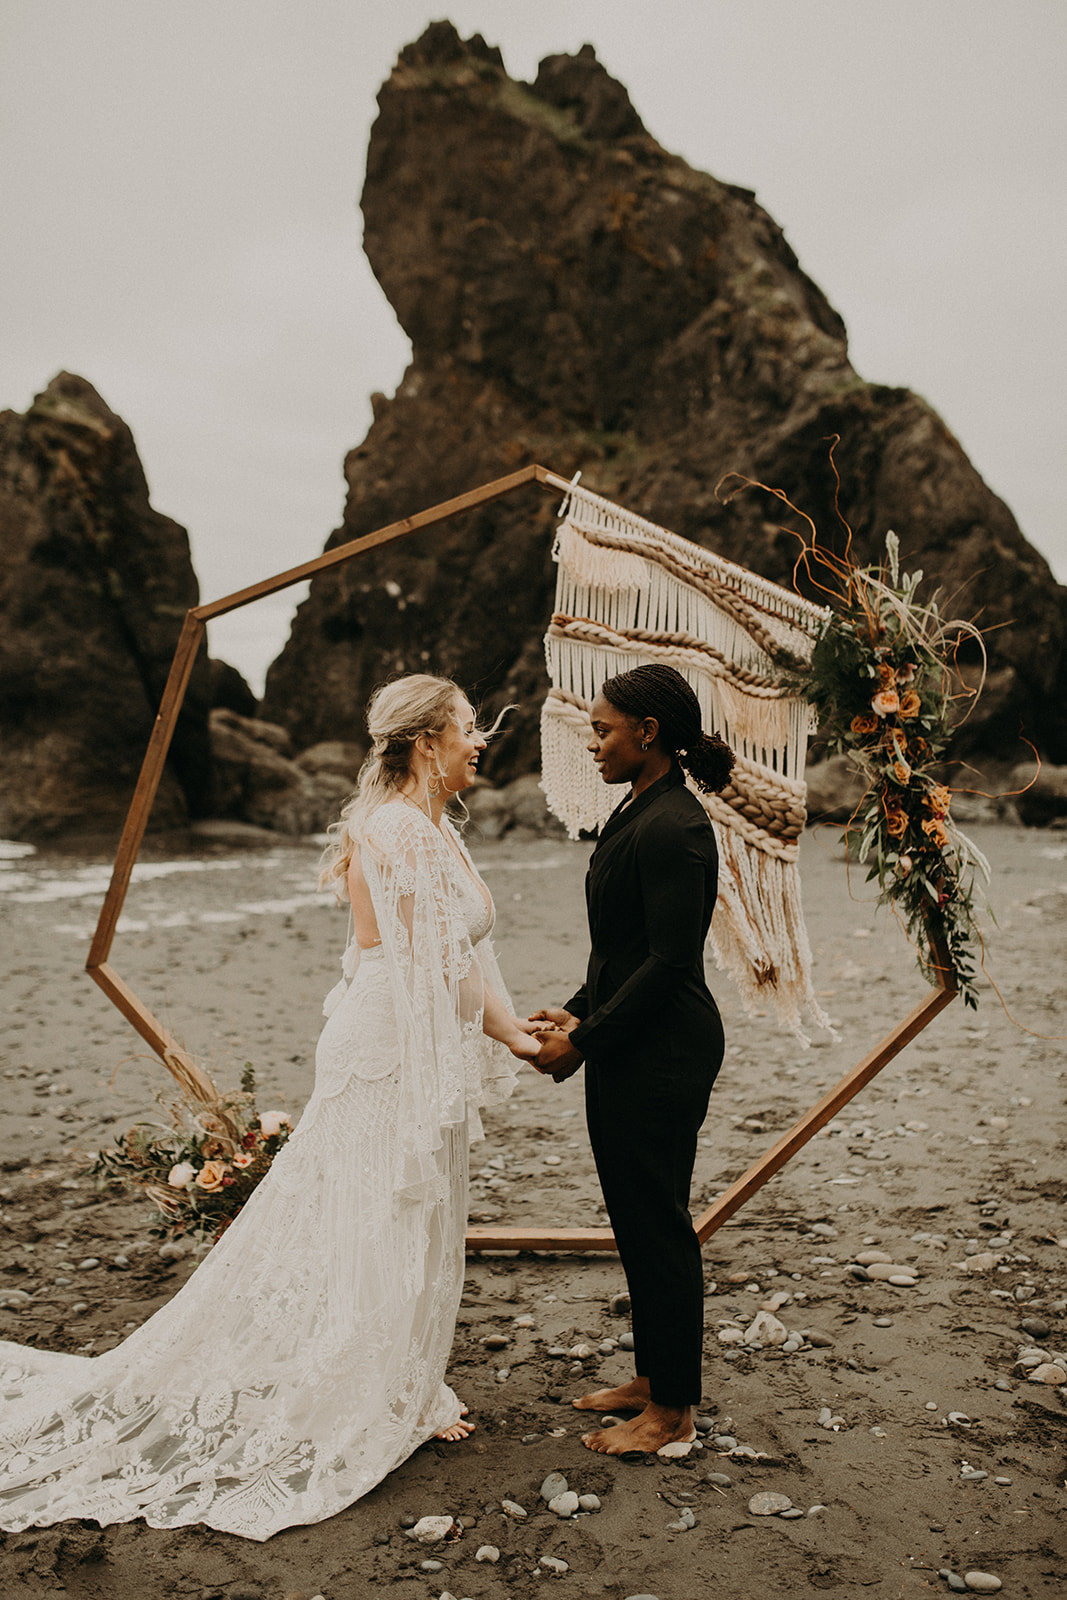 Ruby_Beach_Styled_Elopement_-_Run_Away_with_Me_Elopement_Collective_-_Kamra_Fuller_Photography_-_Ceremony-4